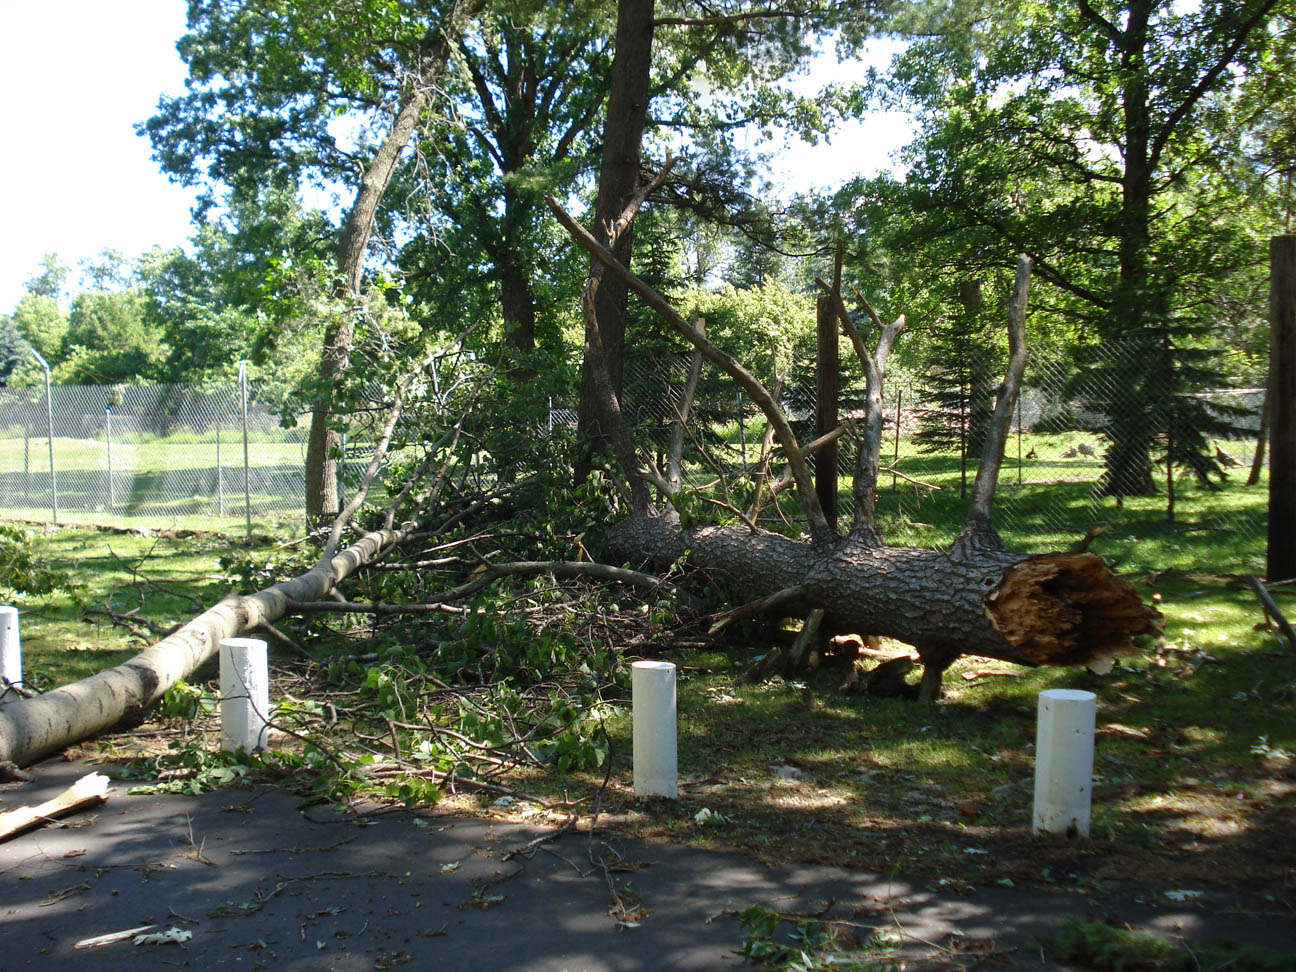 Snapped trees in Pine Grove Park, Little Falls, MN, July 12, 2008